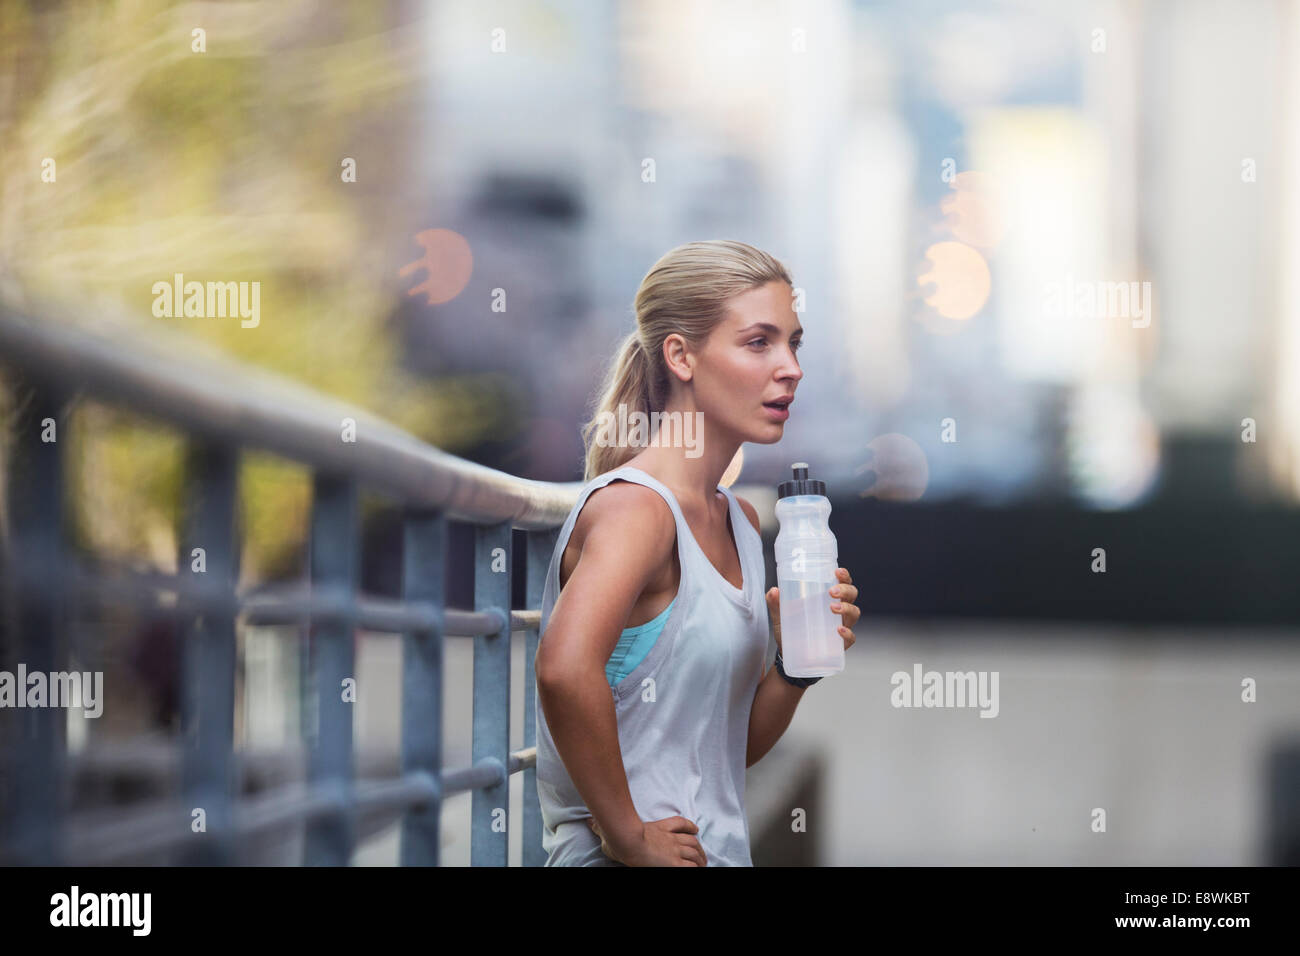 Woman resting after exercising on city street - Stock Image